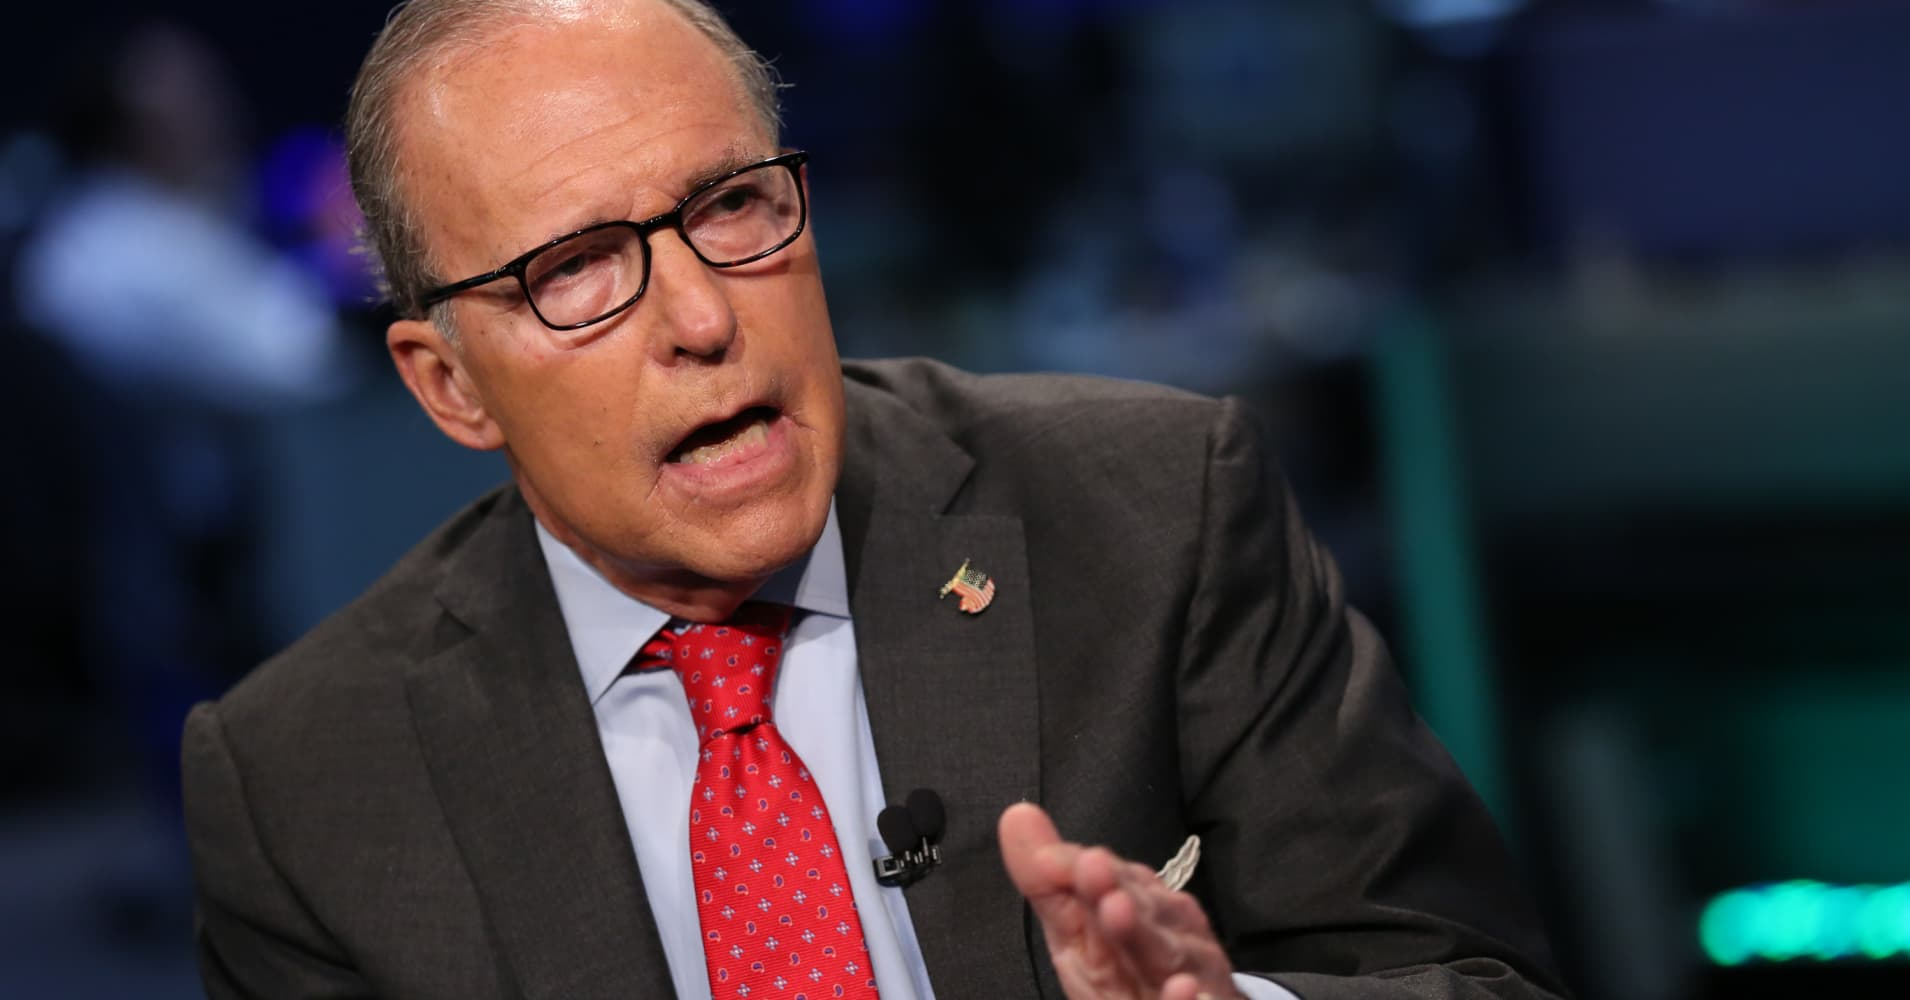 REPORT KUDLOW JOINING WHITE HOUSE